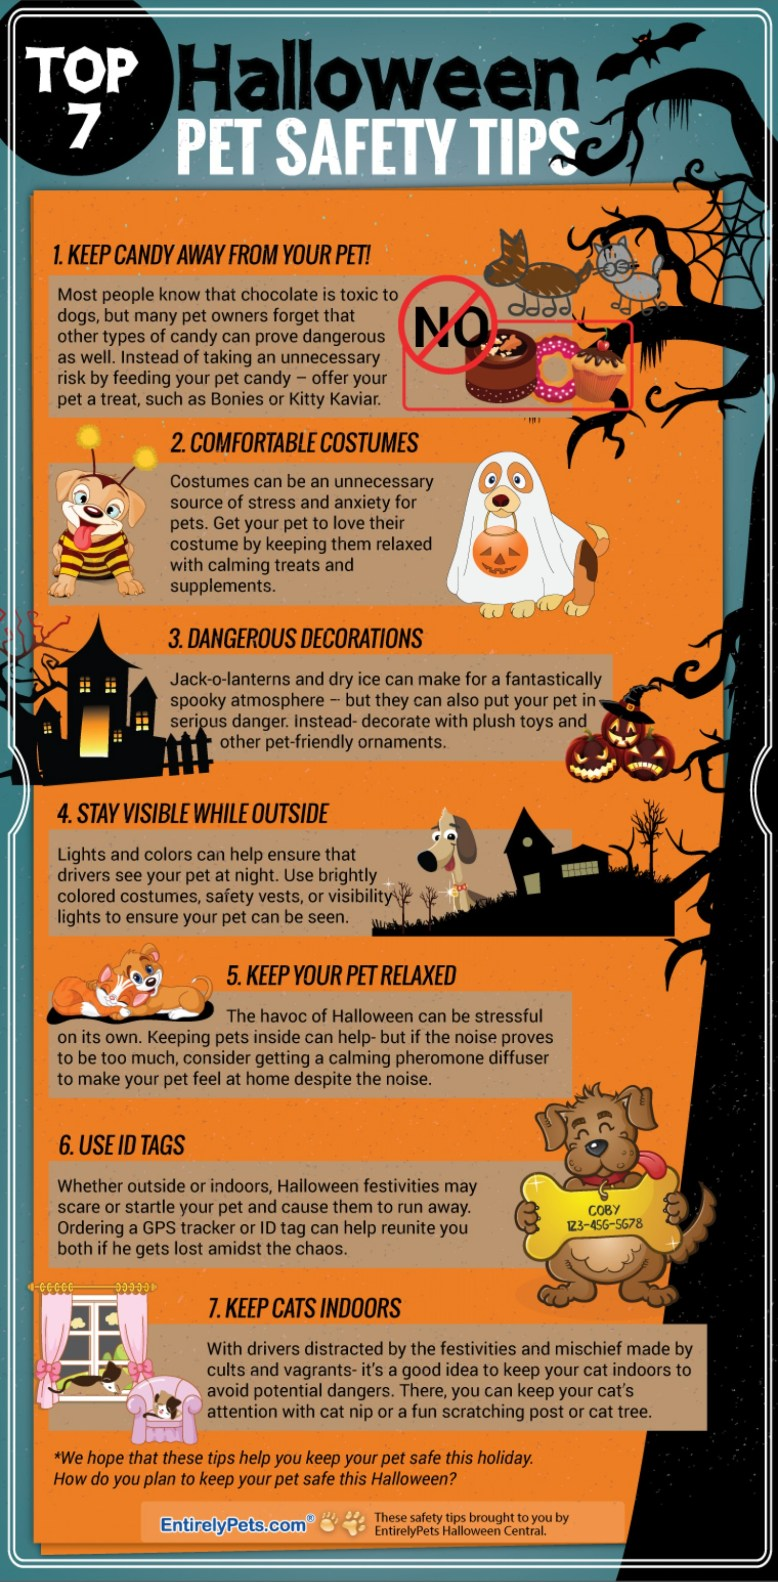 halloween-pet-safety-tips_54342f1fc31ec_w1500